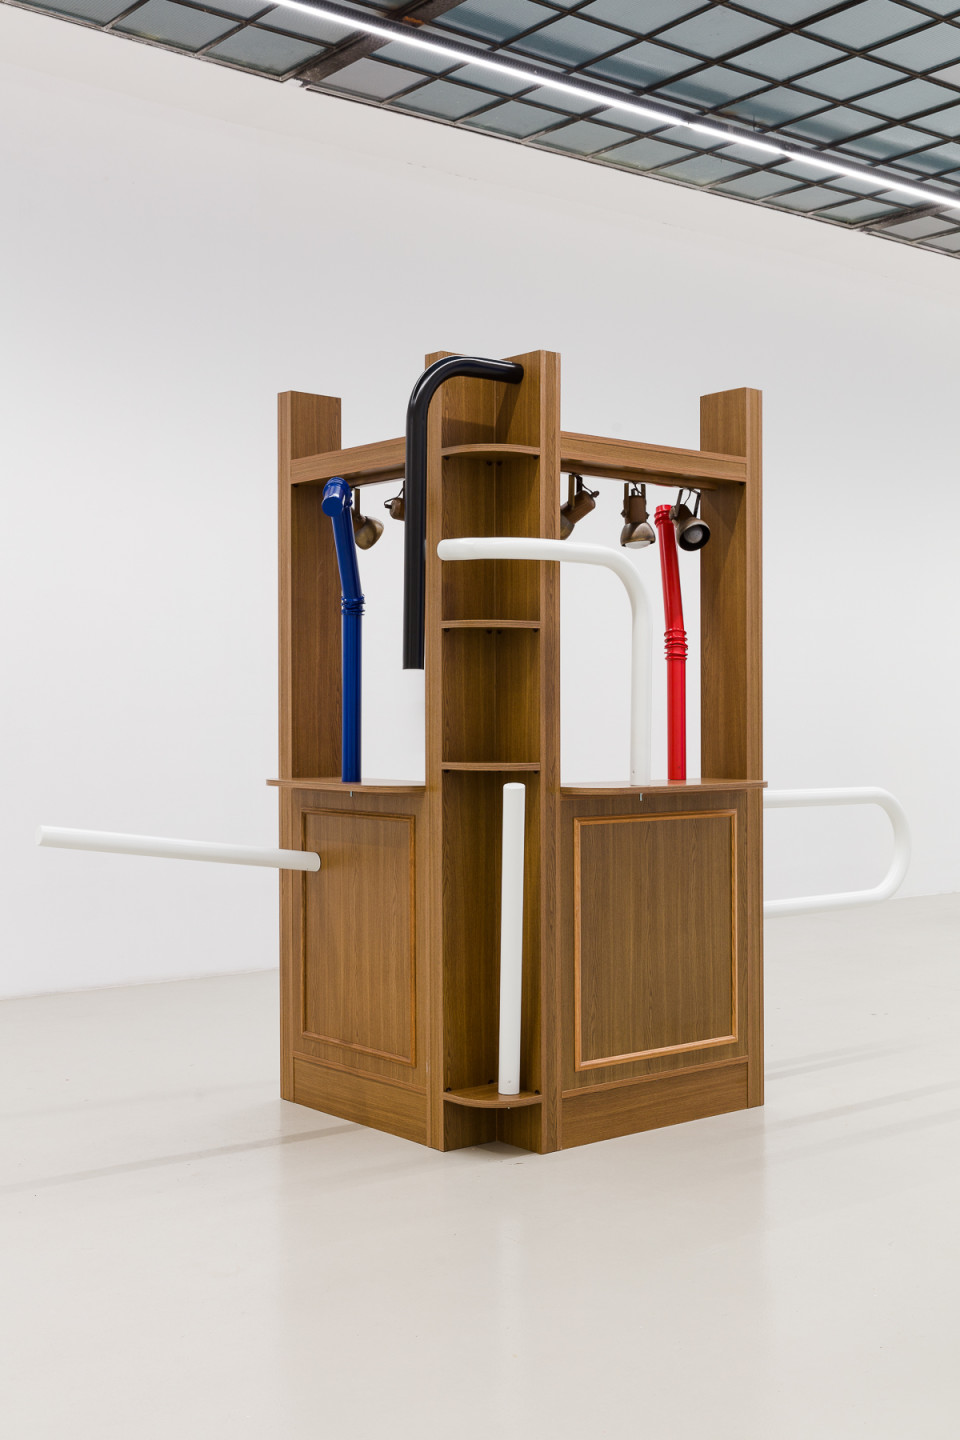 George Henry Longly Express Delivery, 2019 wooden bar, bollards (Bollards Provenance: Palais de Tokyo) 230 x 280 x 120 cm 90 1/2 x 110 1/4 x 47 1/4 in